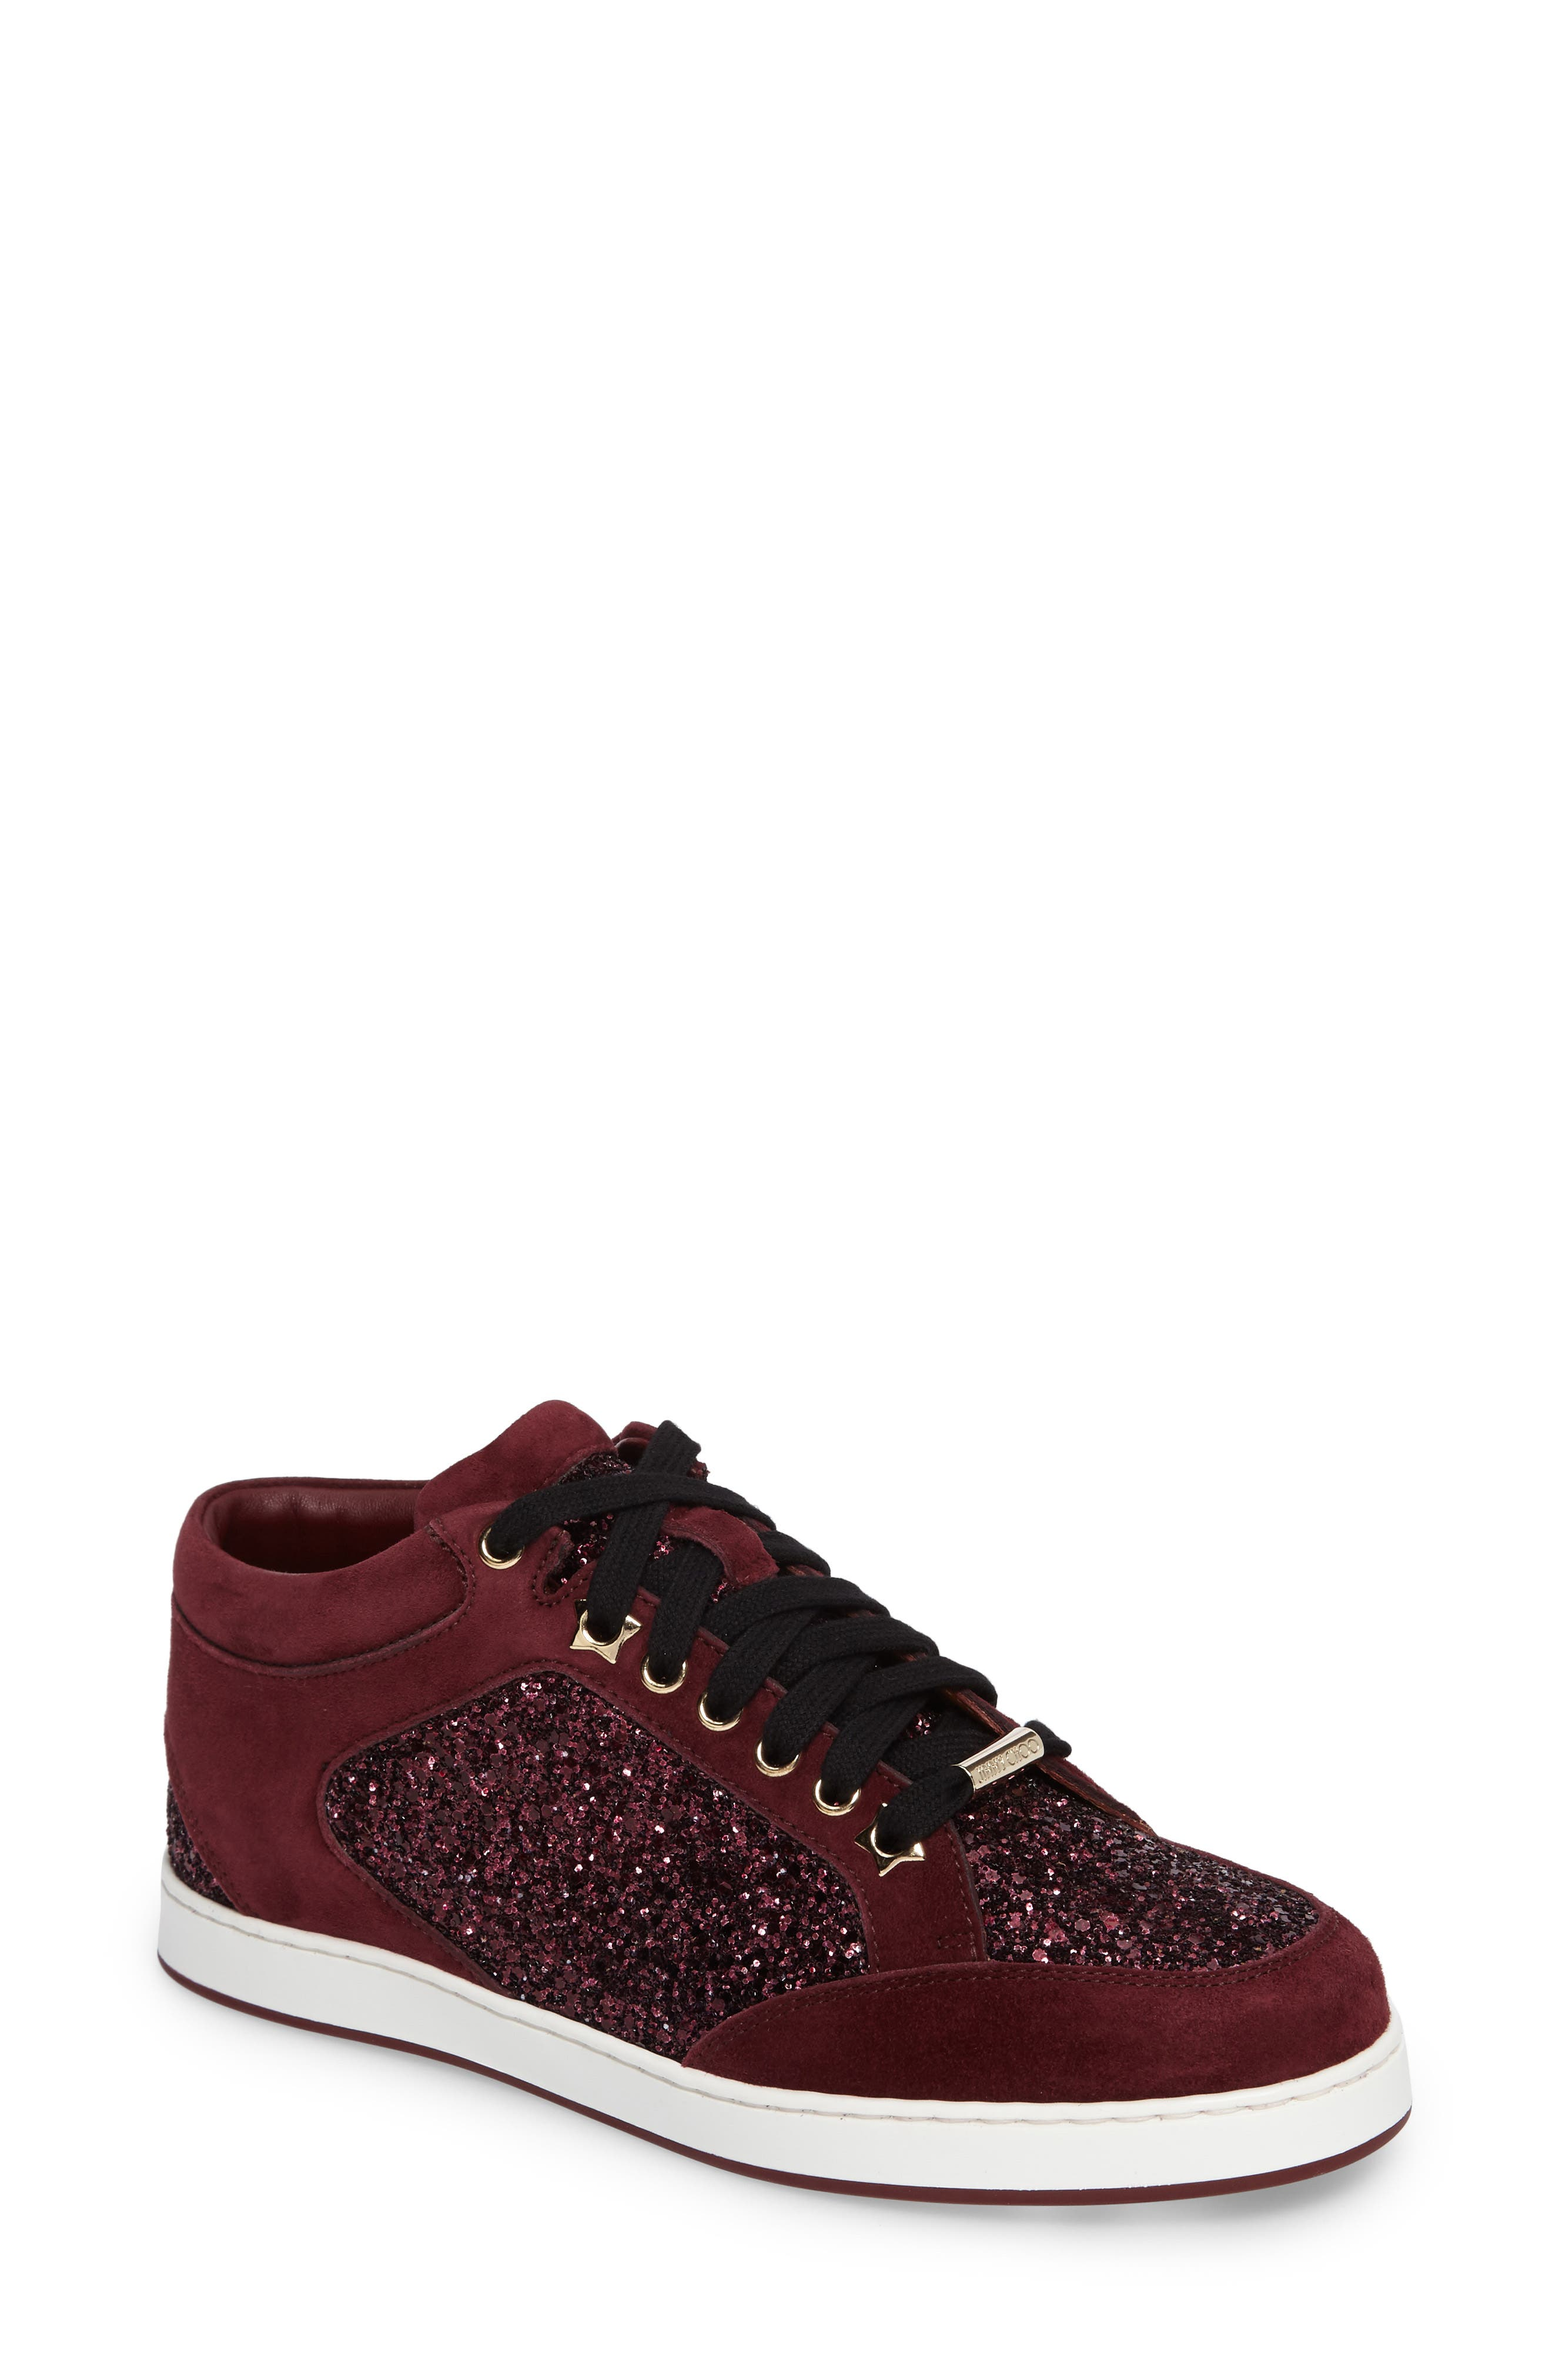 Miami Low Top Sneaker,                             Main thumbnail 1, color,                             Burgundy